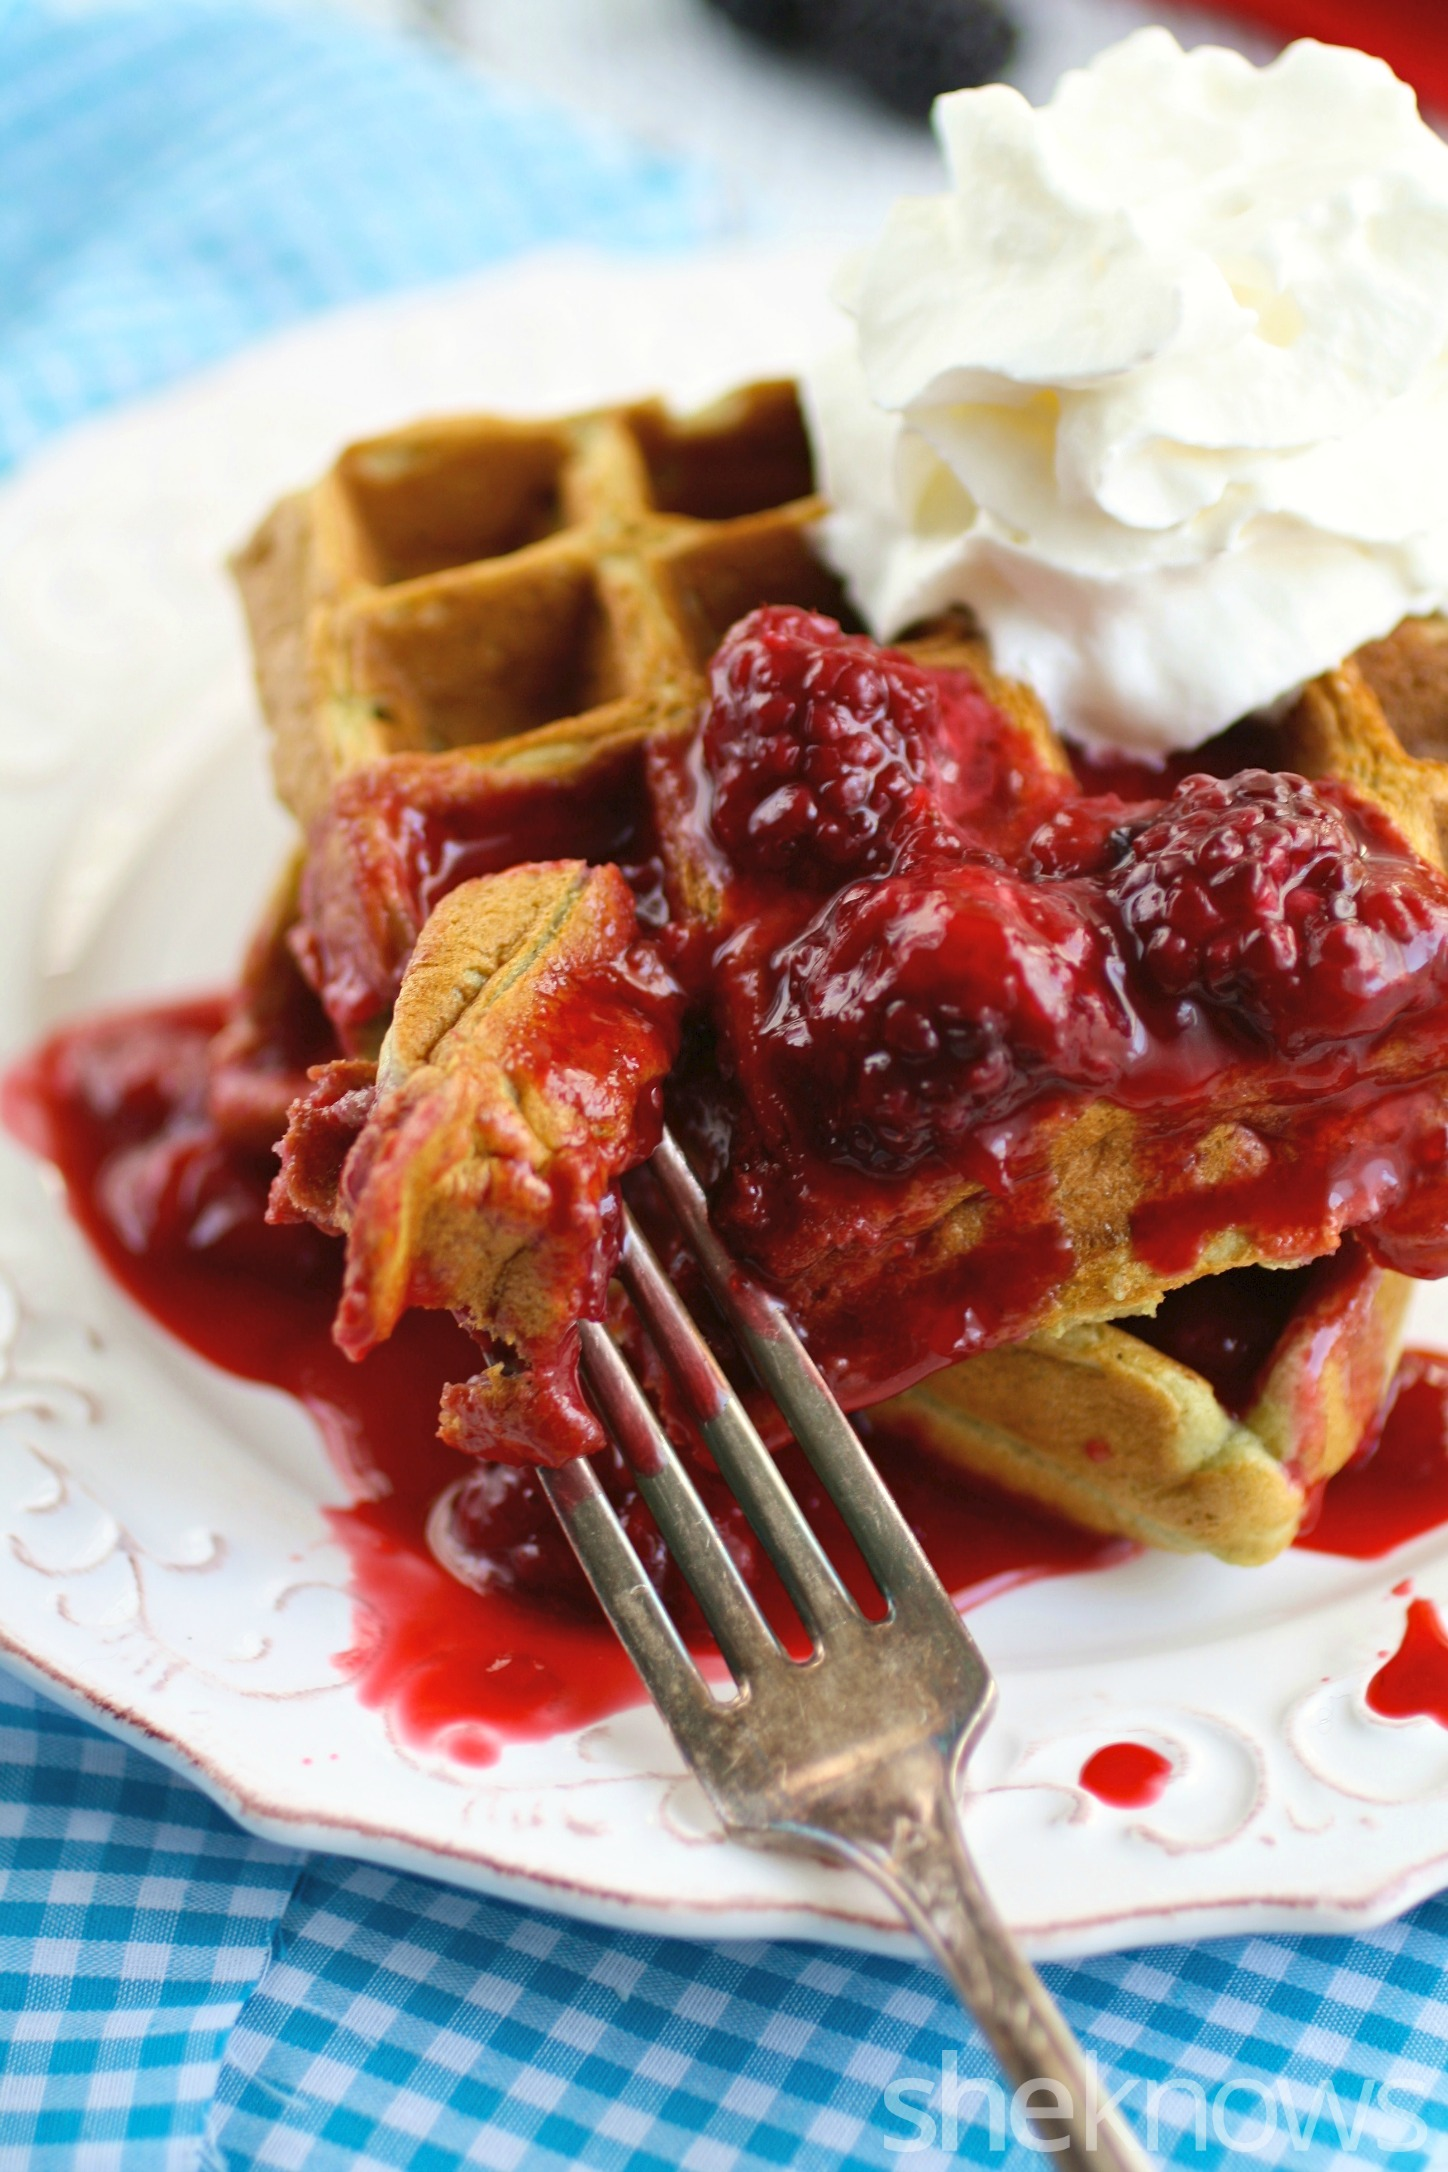 You'll want to devour these waffles with strawberry-blackberry compote